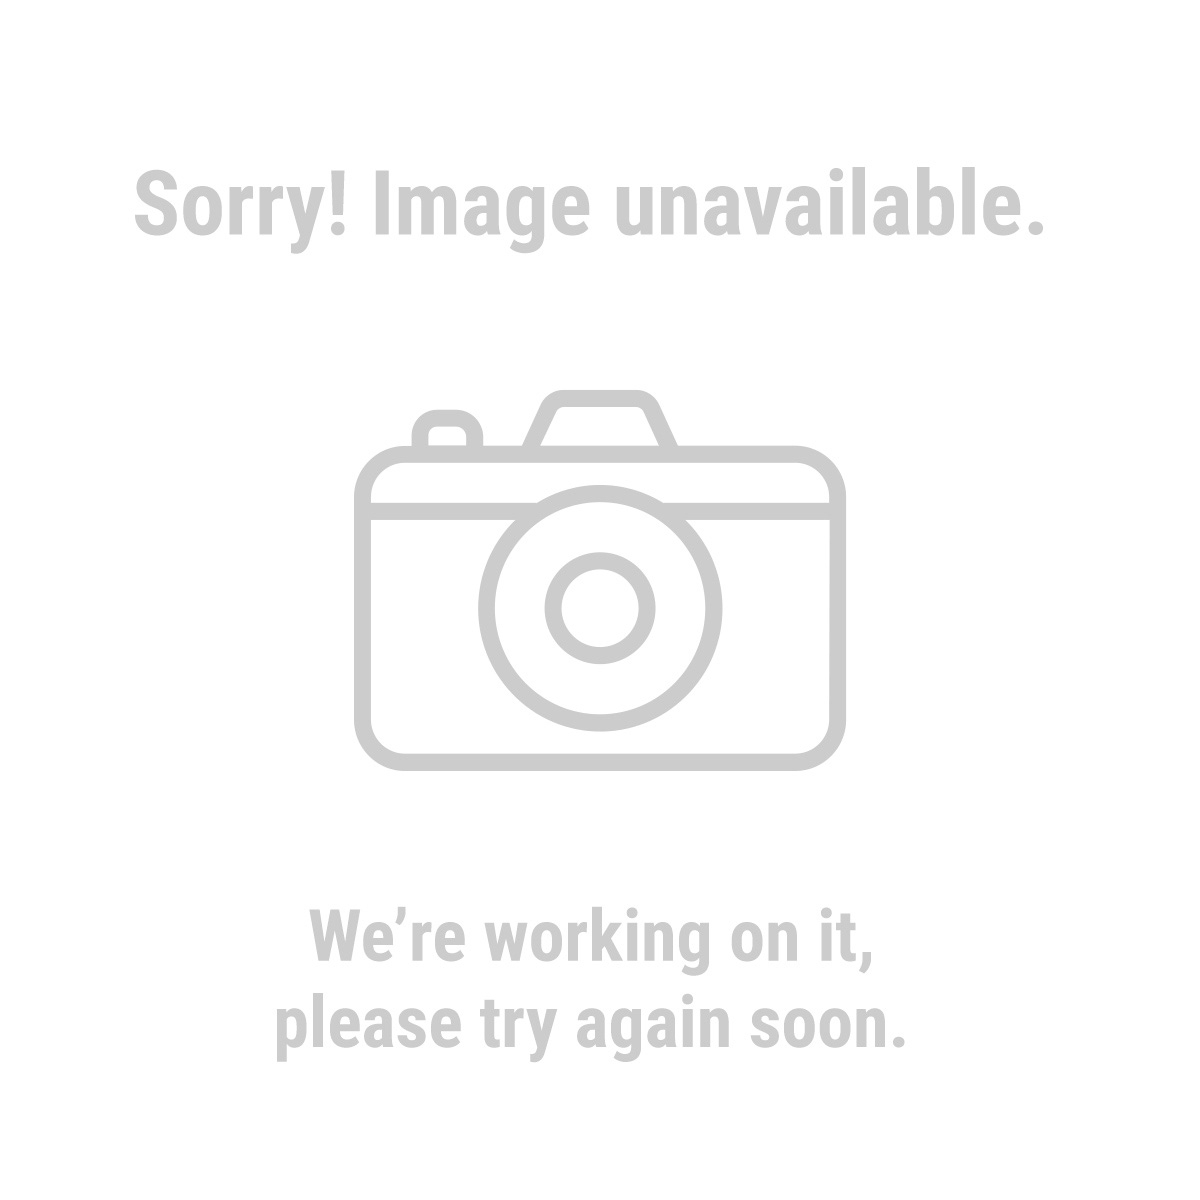 Drill Master 68459 33 Piece Security Bit Set